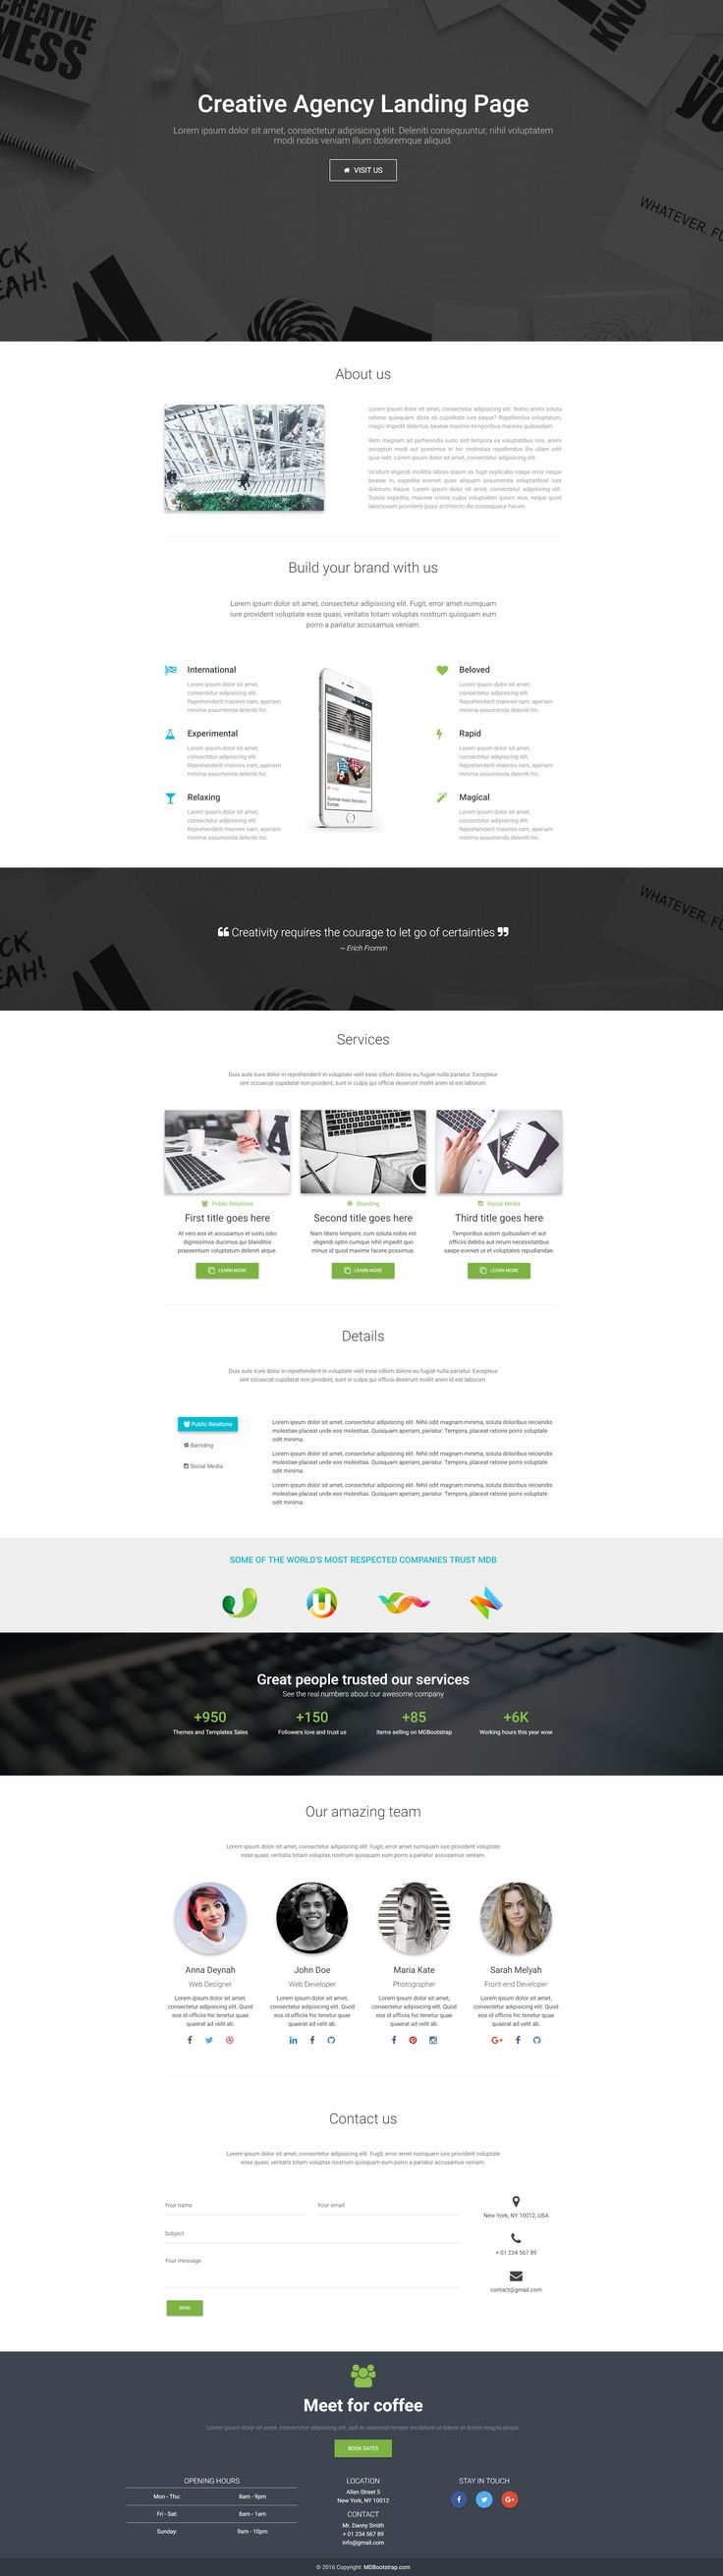 Creative Landing Page Template, made with Material Design for Bootstrap